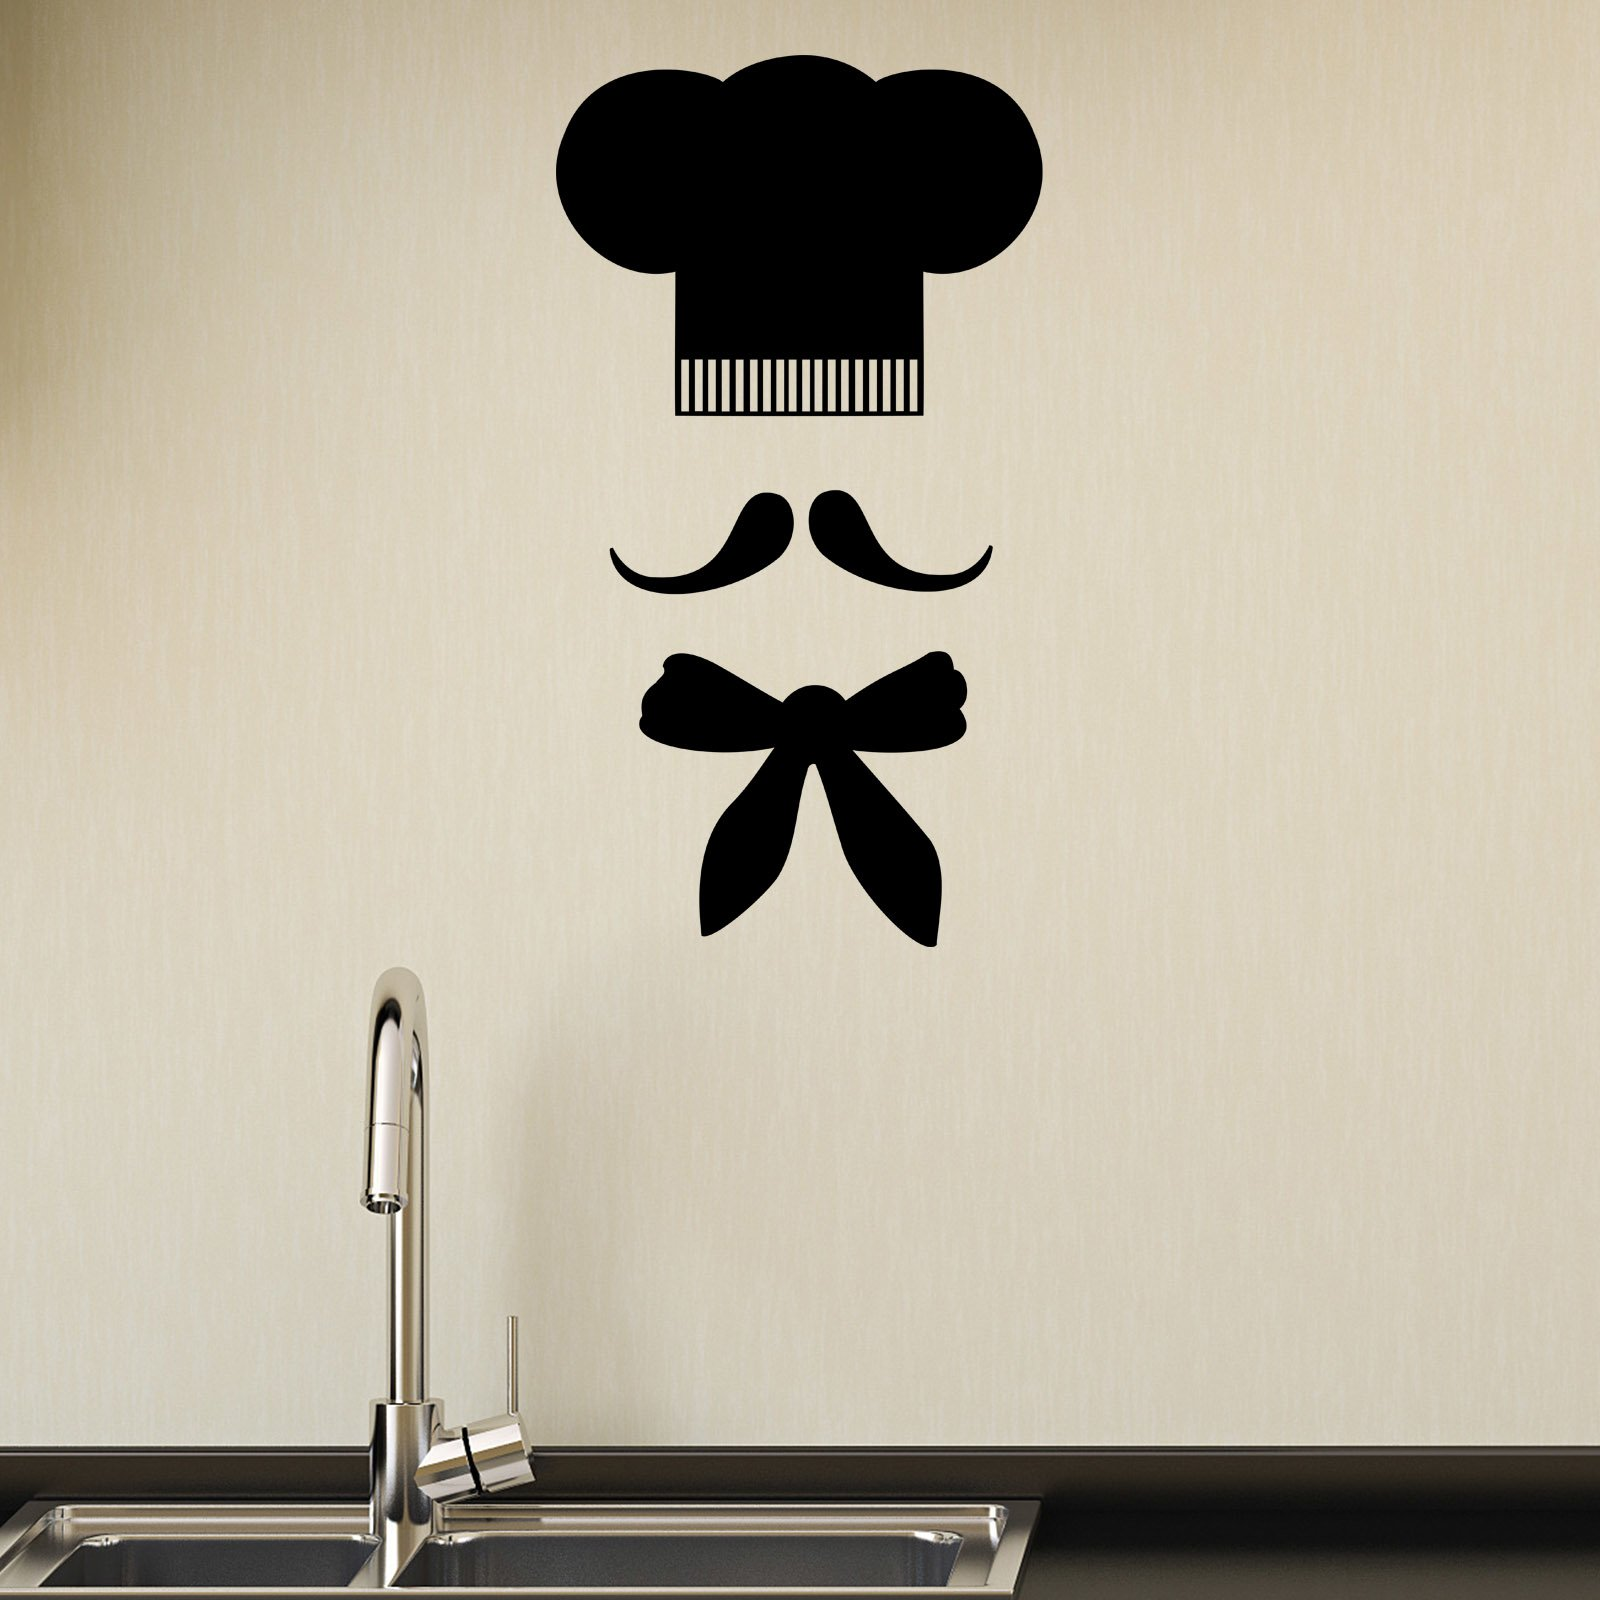 Chef Hat and Moustache Kitchen Wall Sticker World of Wall Stickers